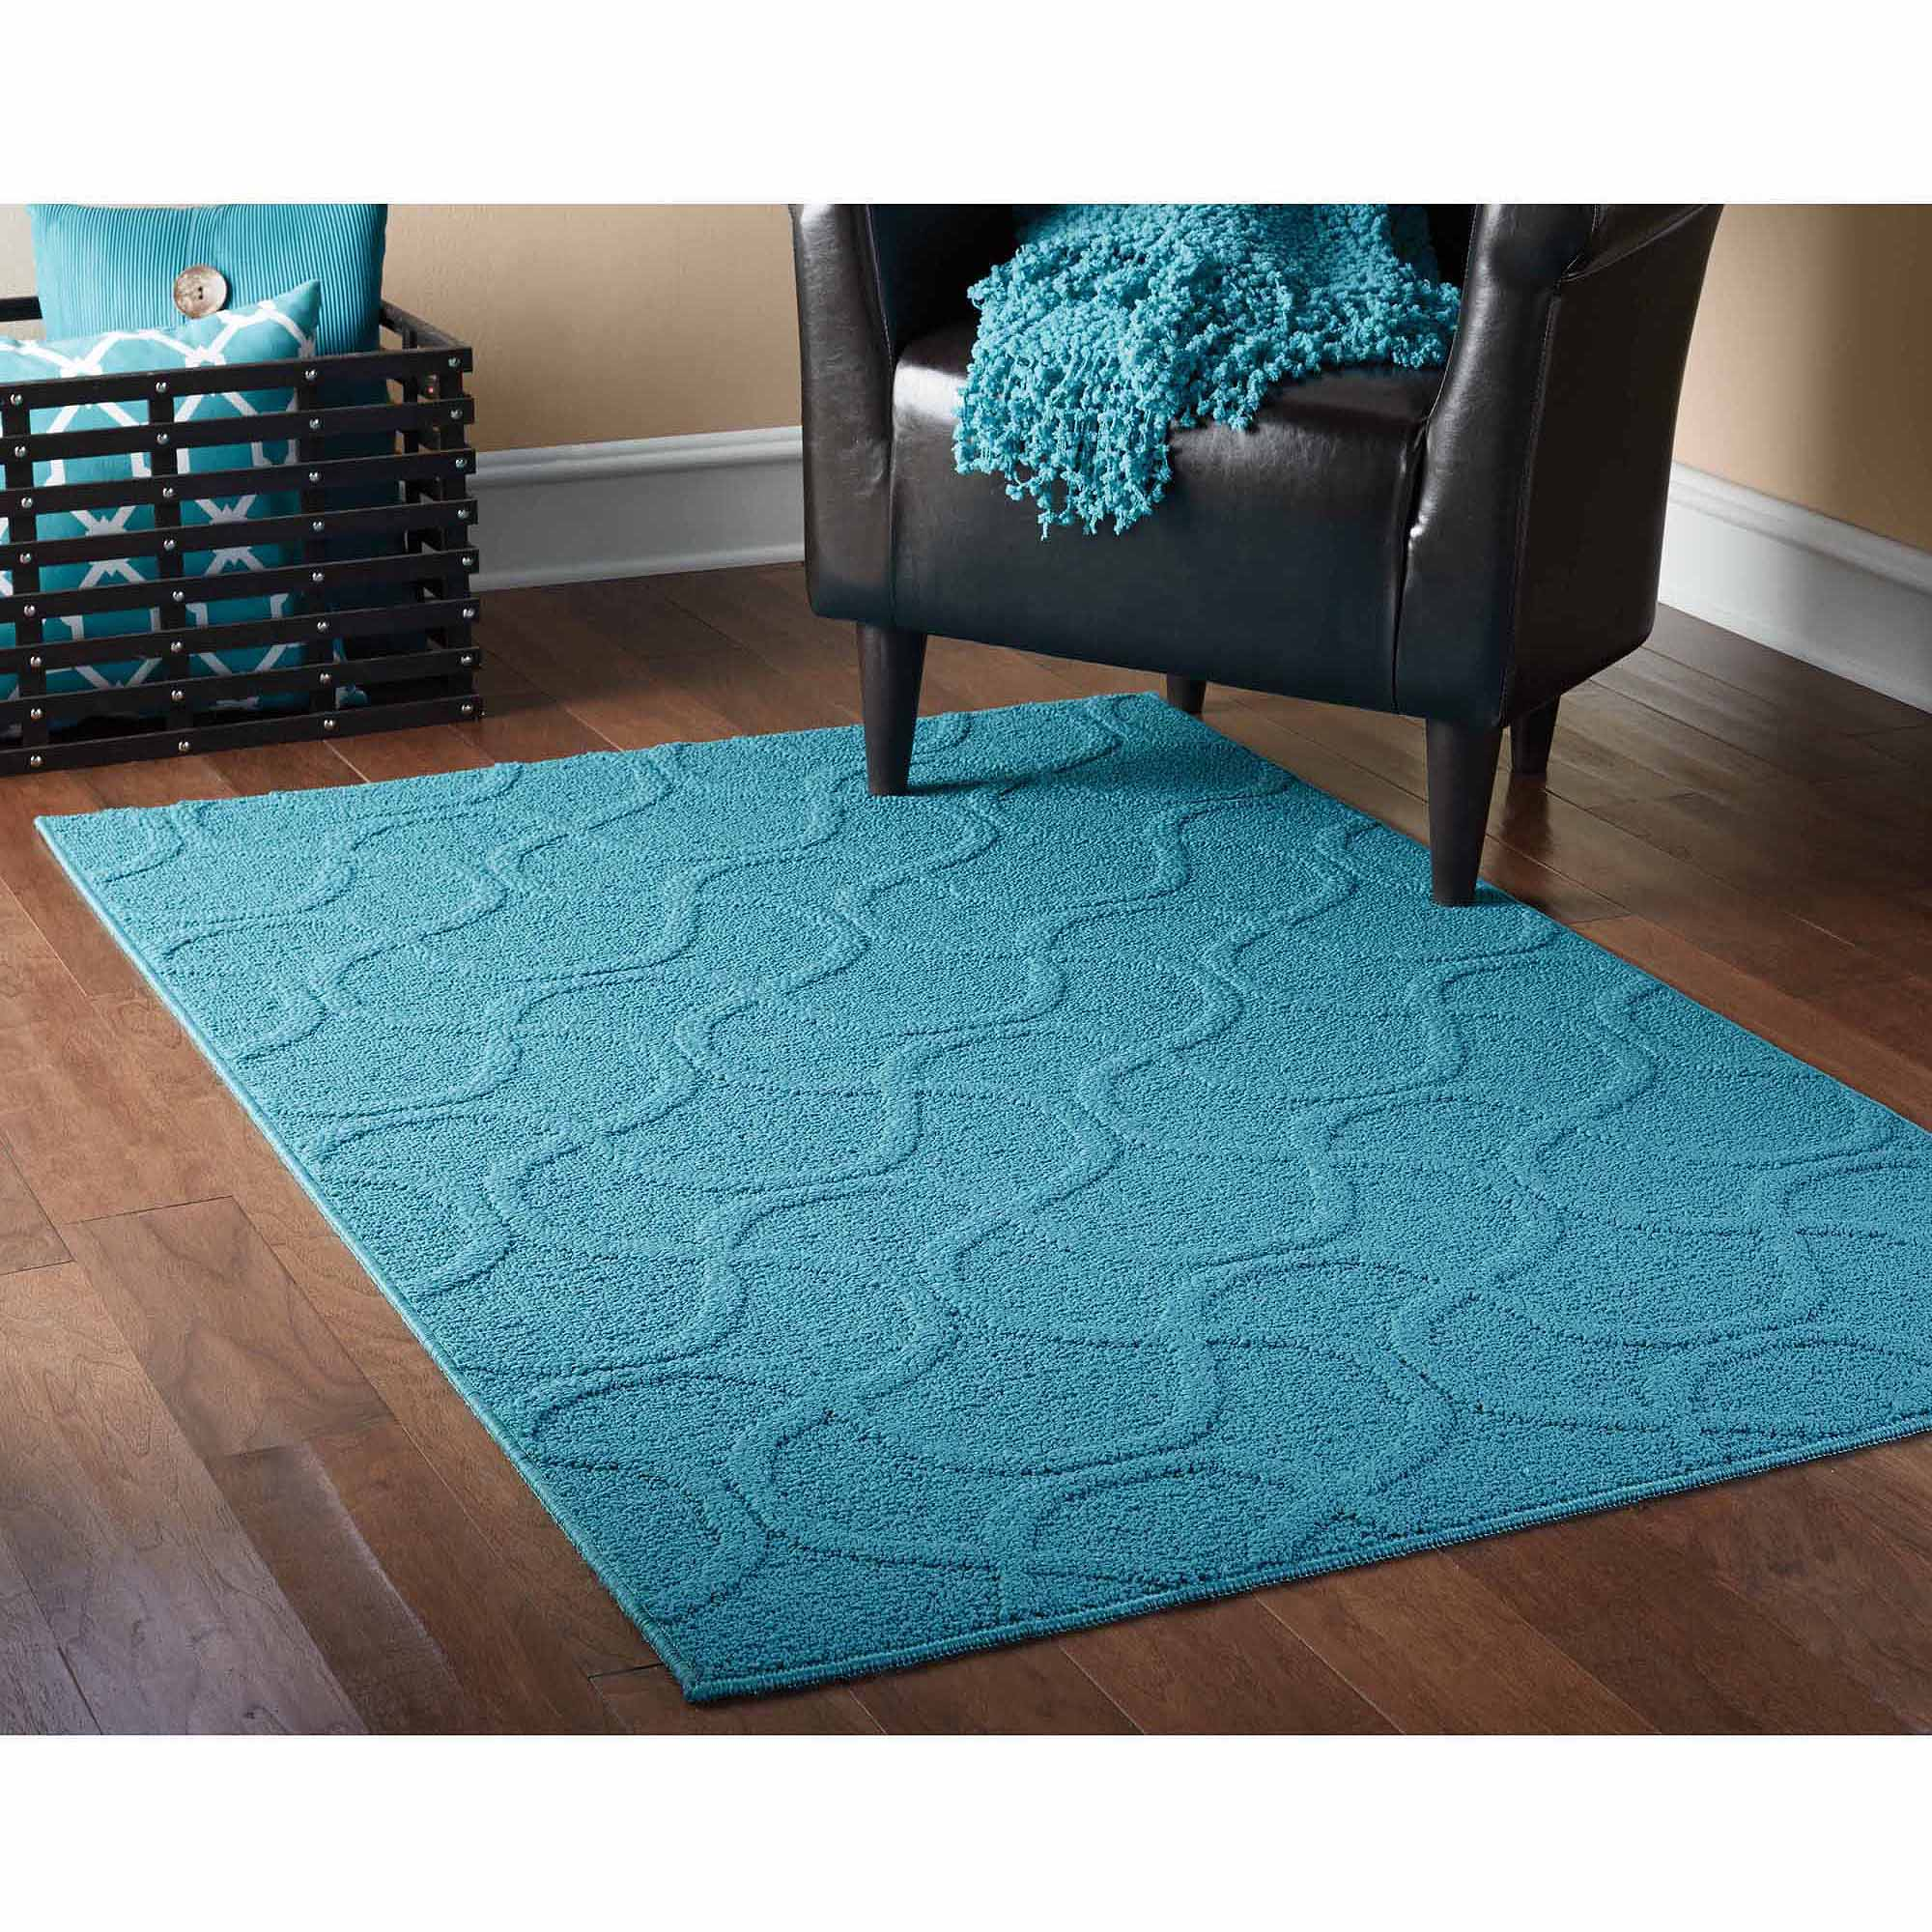 Mainstays Brentwood Collection Area Rug